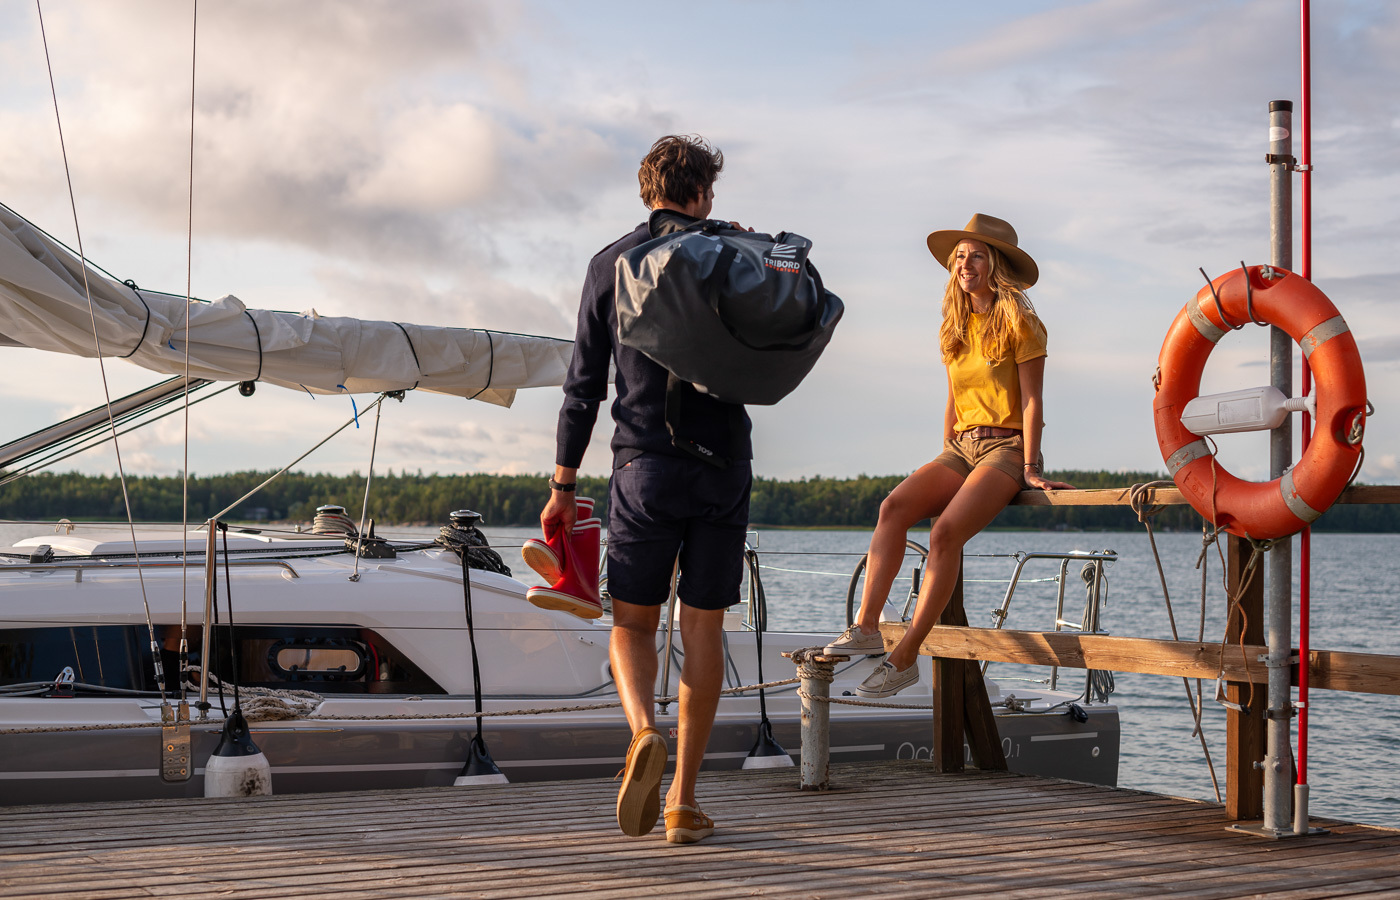 Boat Sales Rise Amidst Covid-19 Pandemic [U.S. Yacht News]